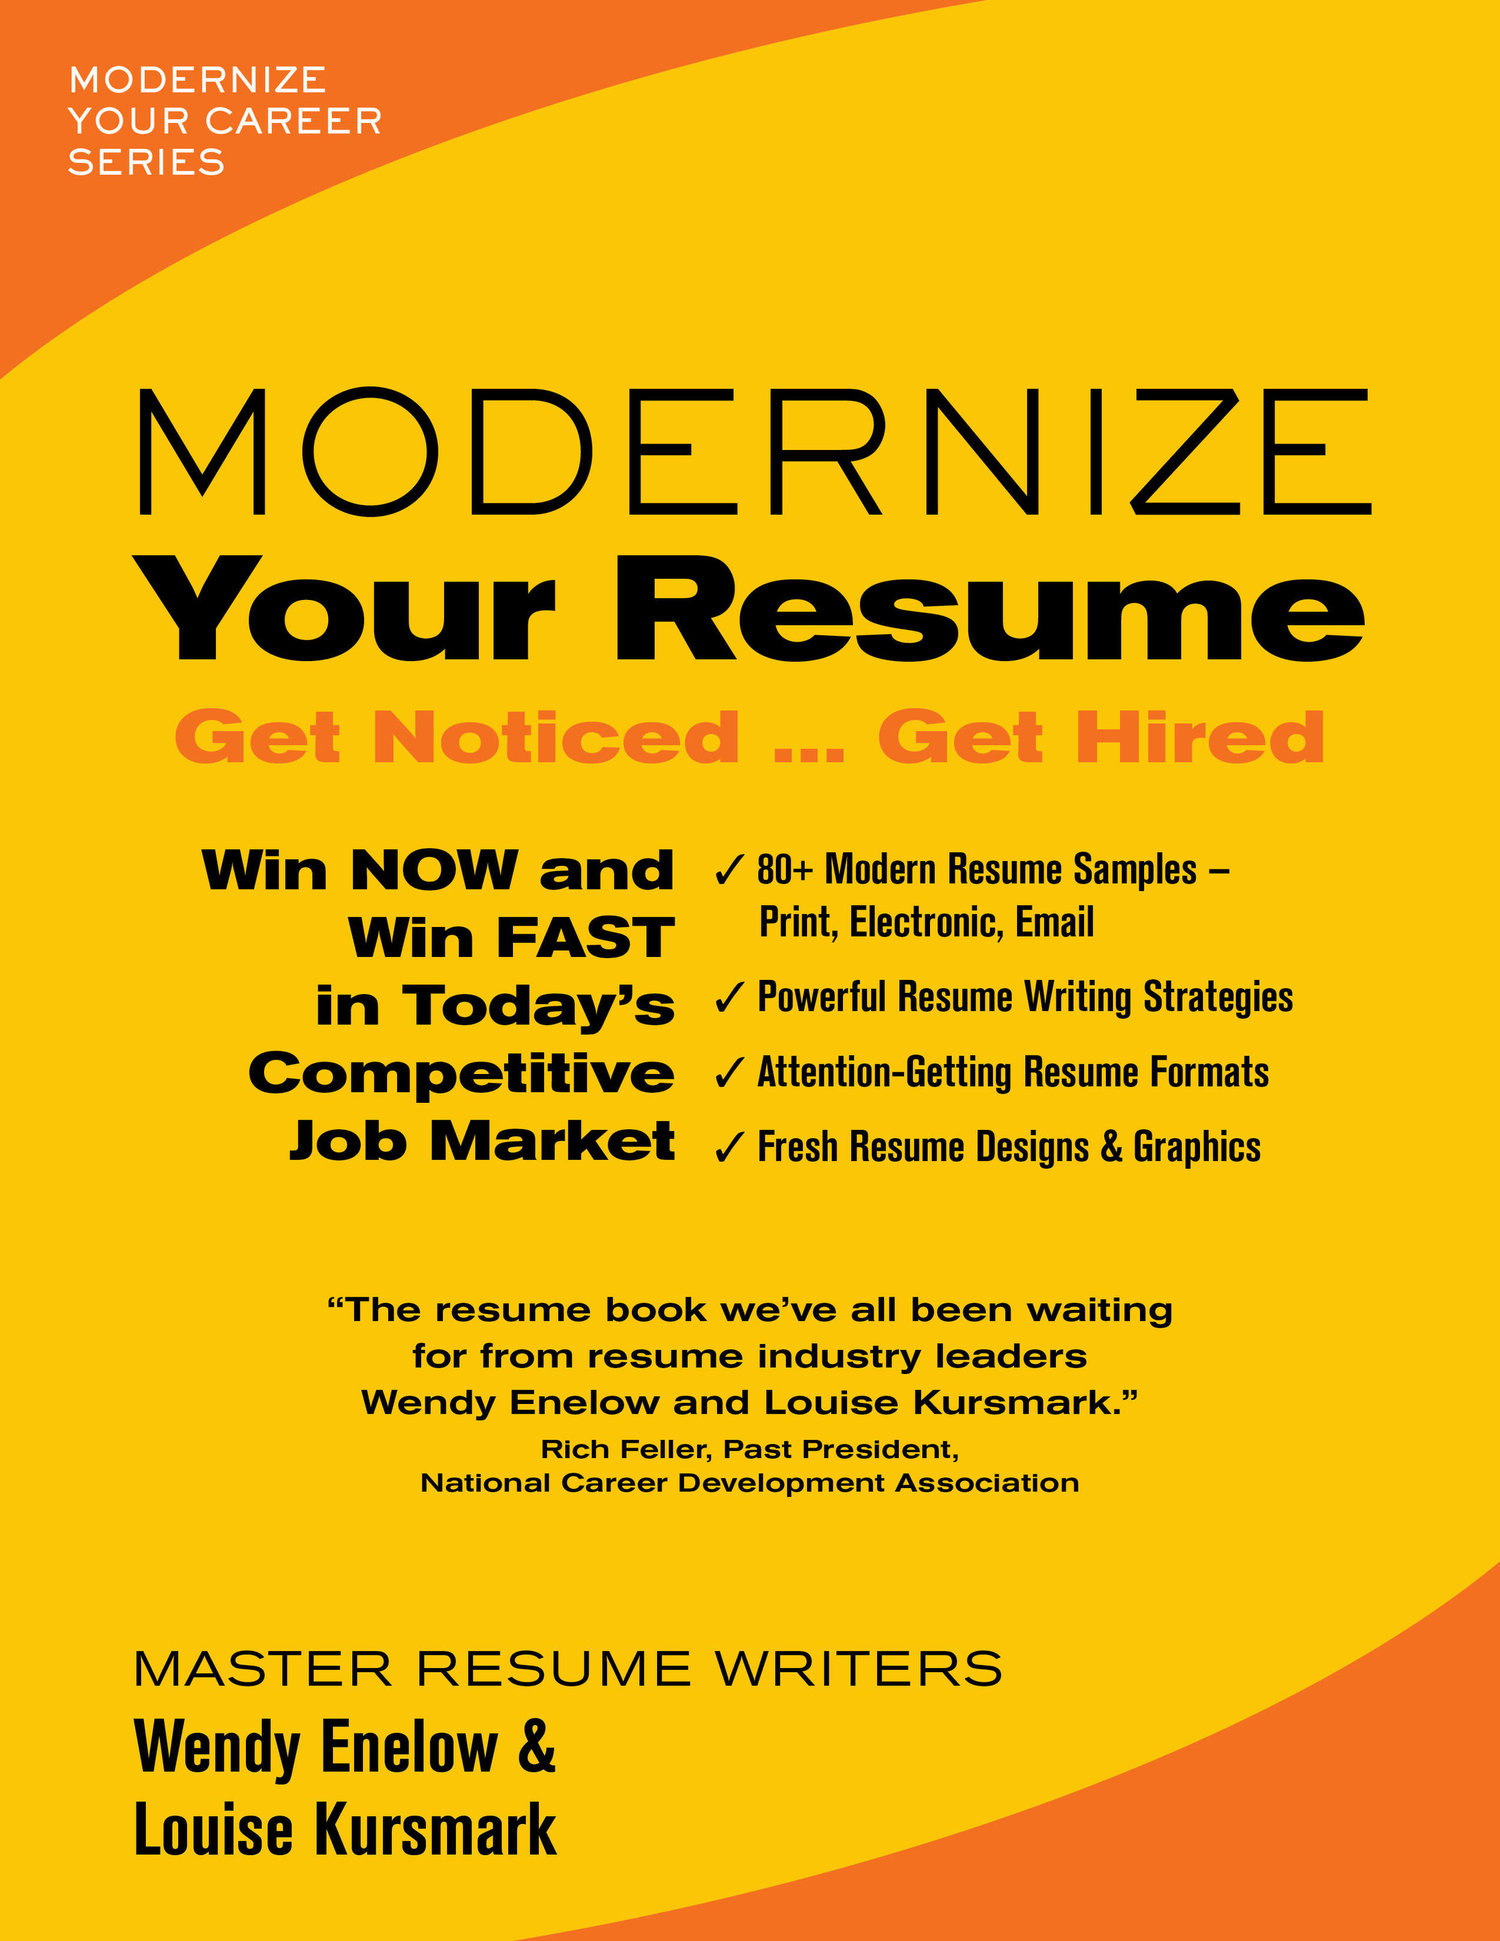 Job Getting Resumes | Modernize Your Resume Get Noticed Get Hired Bryce Legal Best